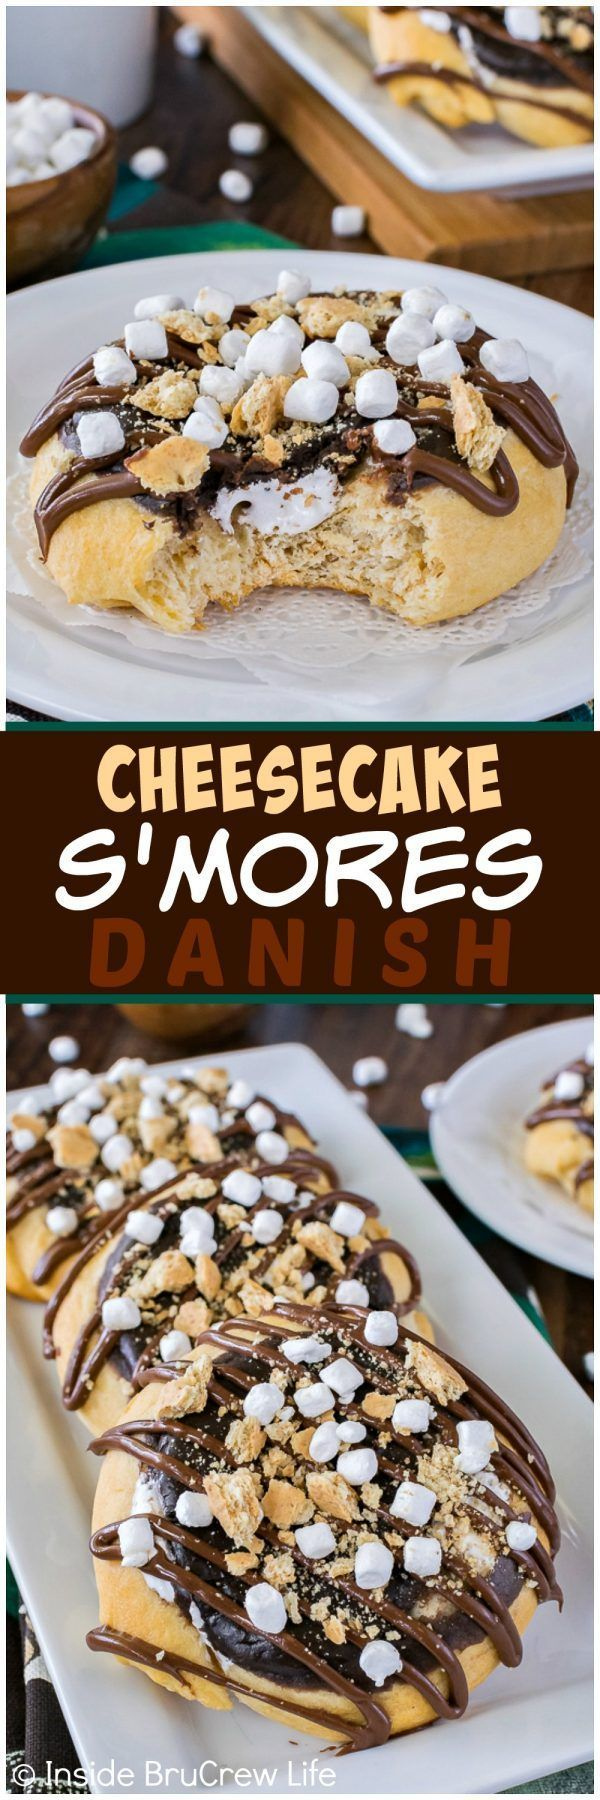 Cheesecake S'mores Danish - these rolls are filled with marshmallow and chocolate. Easy recipe to make for breakfast or late night snack!